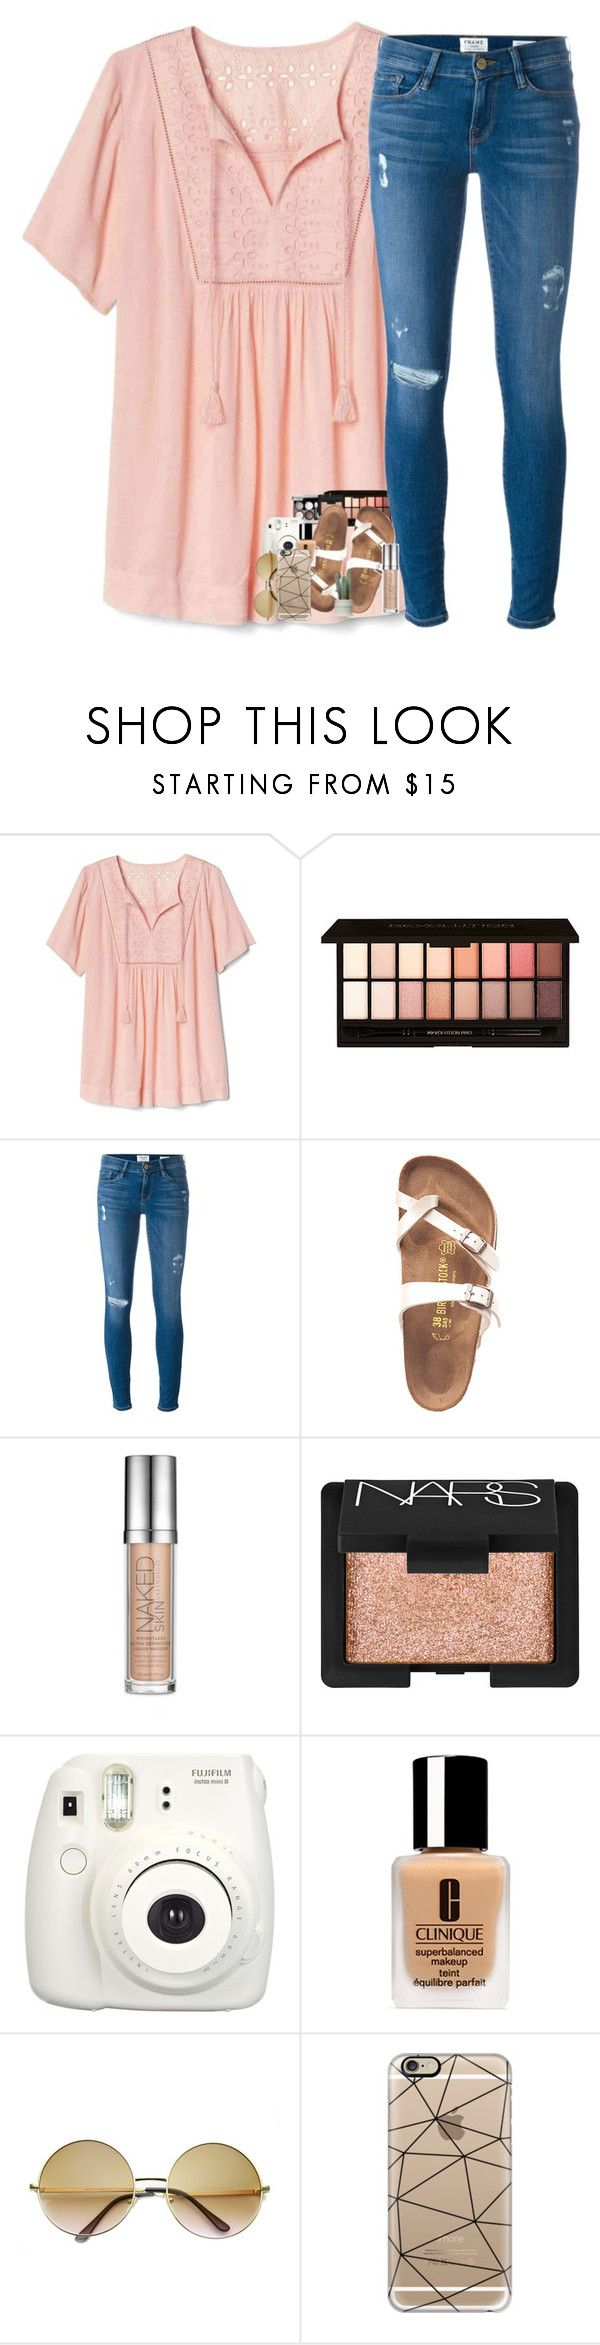 """Last week of school!!"" by classyandsassyabby ❤ liked on Polyvore featuring Gap, ULTA, Frame, Birkenstock, Urban Decay, Chanel, NARS Cosmetics, Fujifilm, Clinique and ZeroUV"